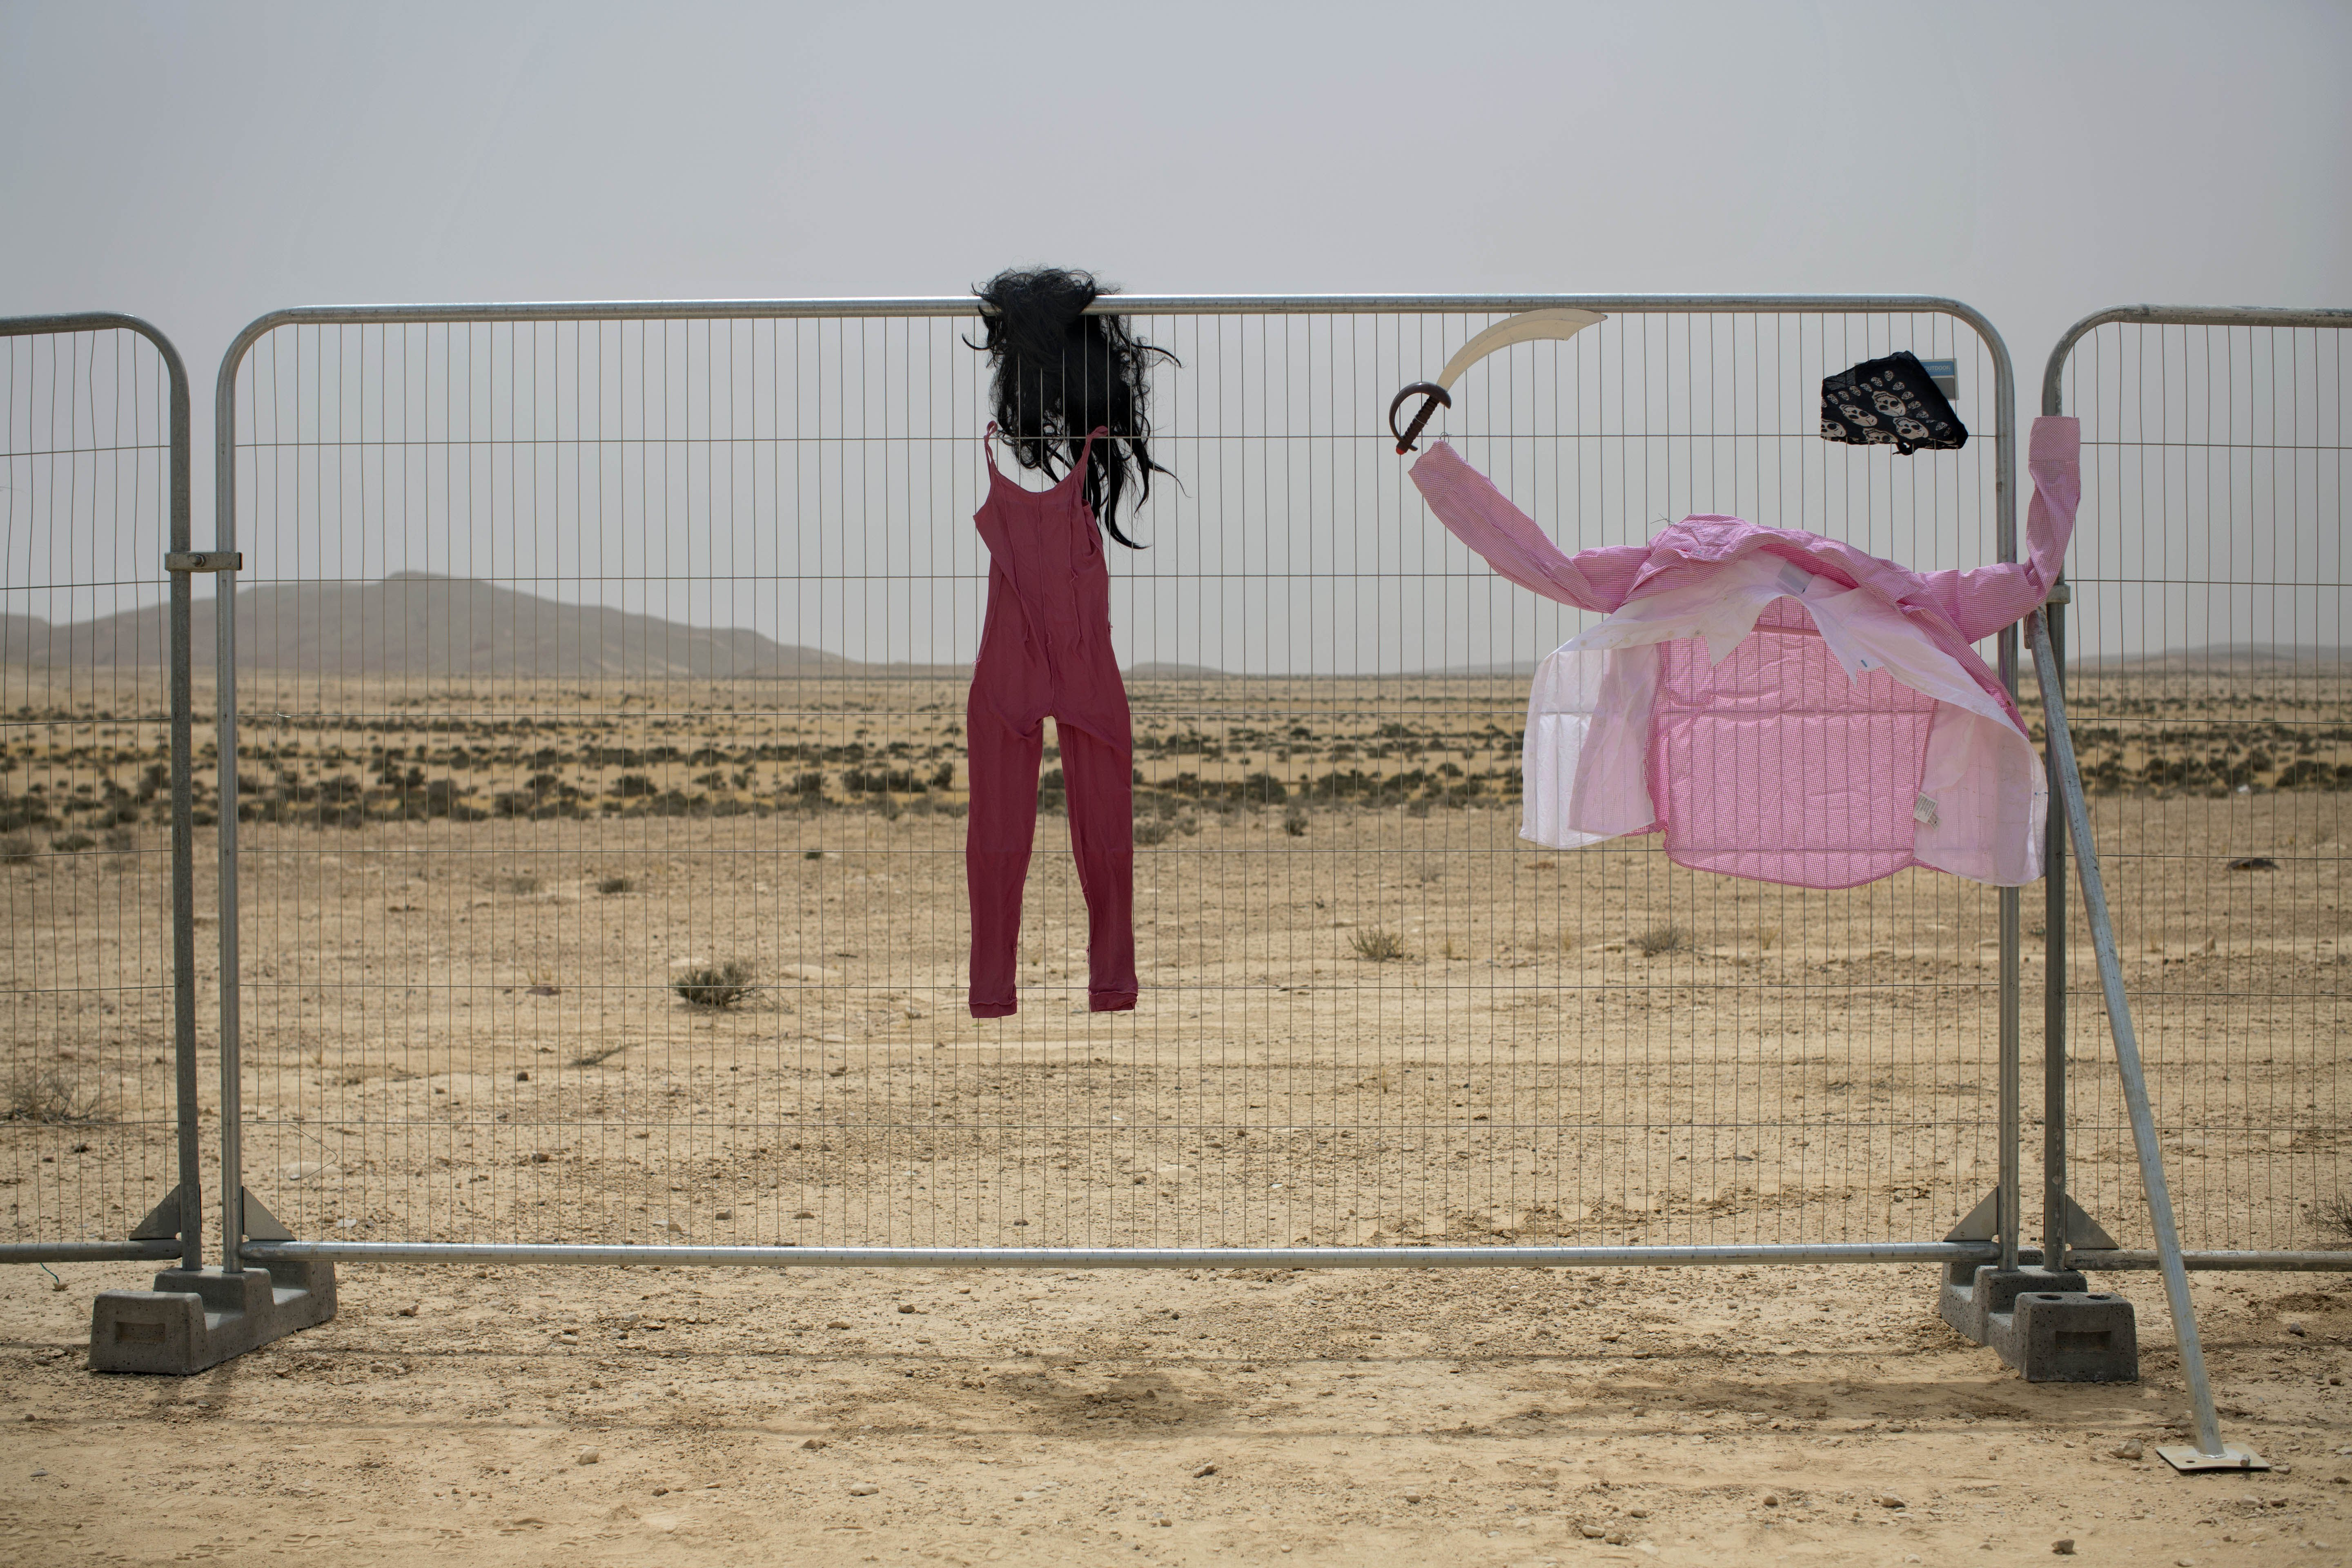 Costumes hang on a fence at Israel''s first Midburn festival in the Negev Desert, Israel on June 4, 2014.